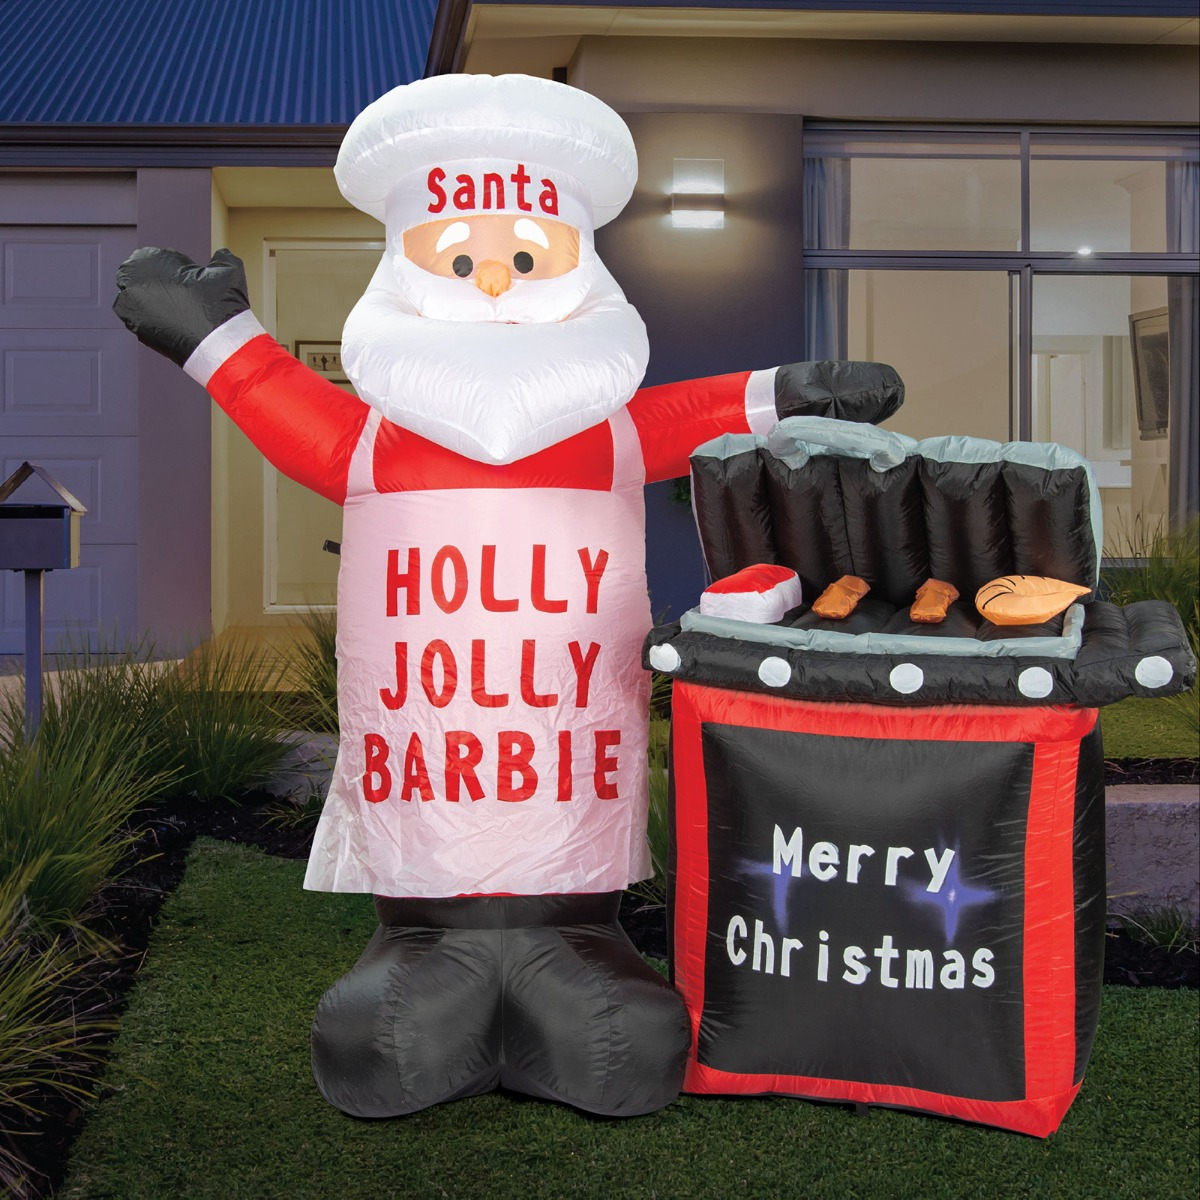 Christmas Lights Christmas Decorations BBQ Santa Inflatable Outdoor/Indoor 1.7m